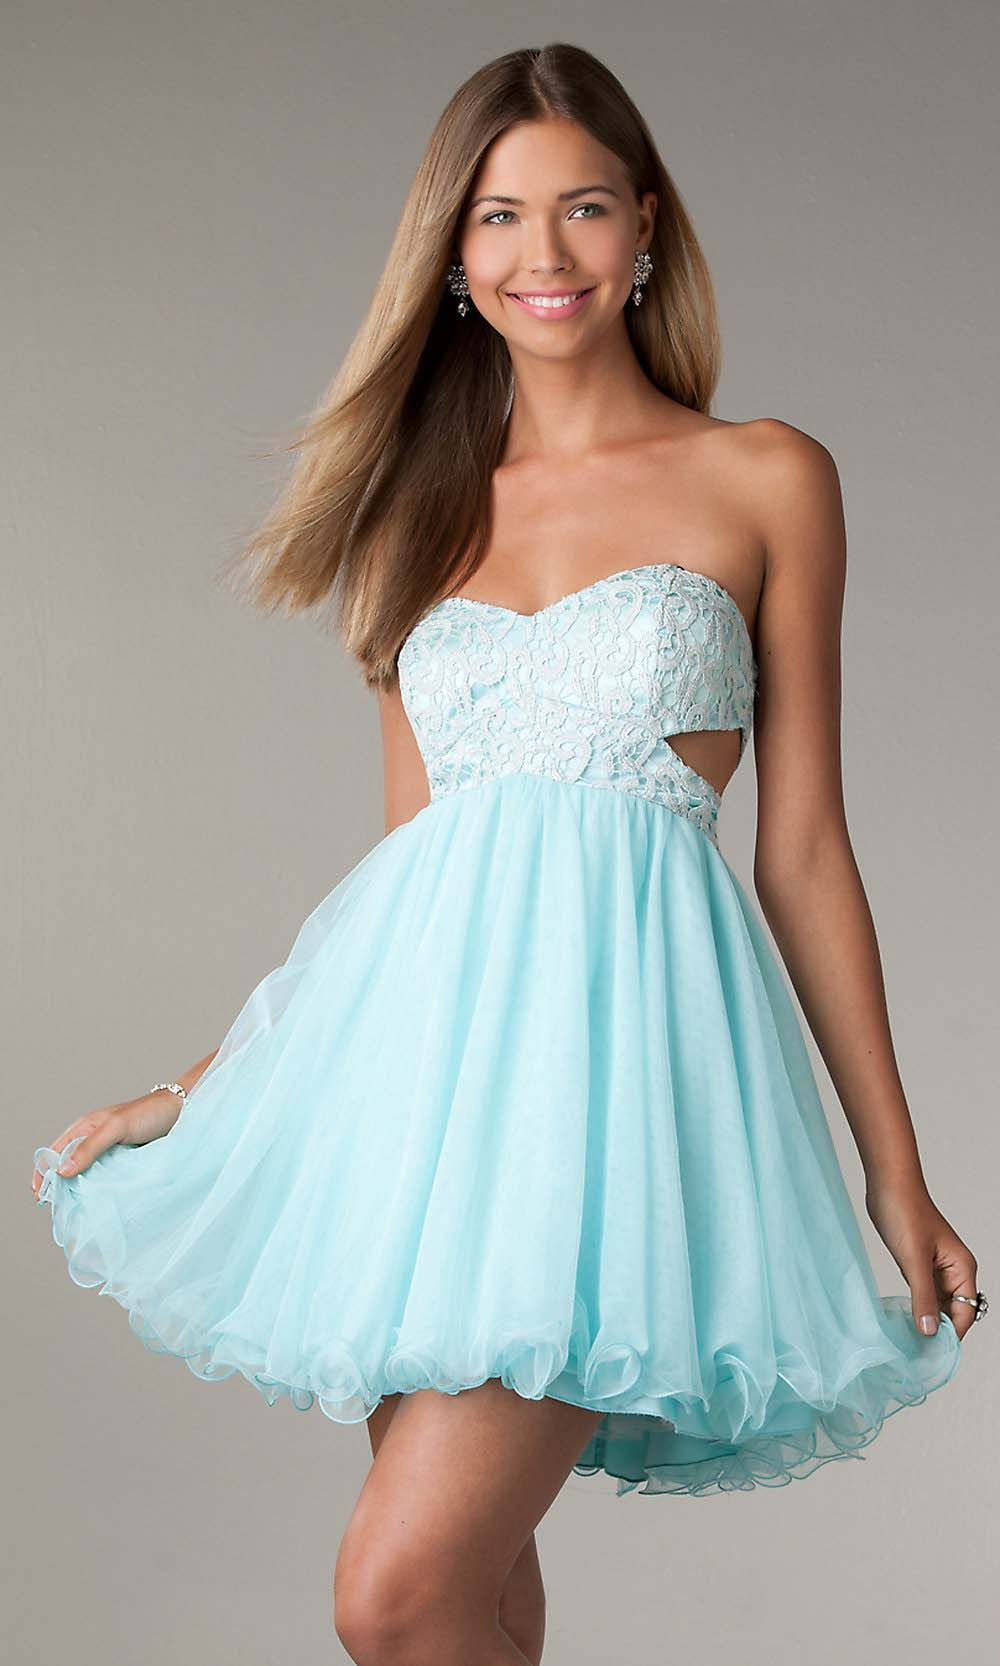 Tiffany Blue Prom Dress Junior Prom Dresses A Line Ball Gown Cute